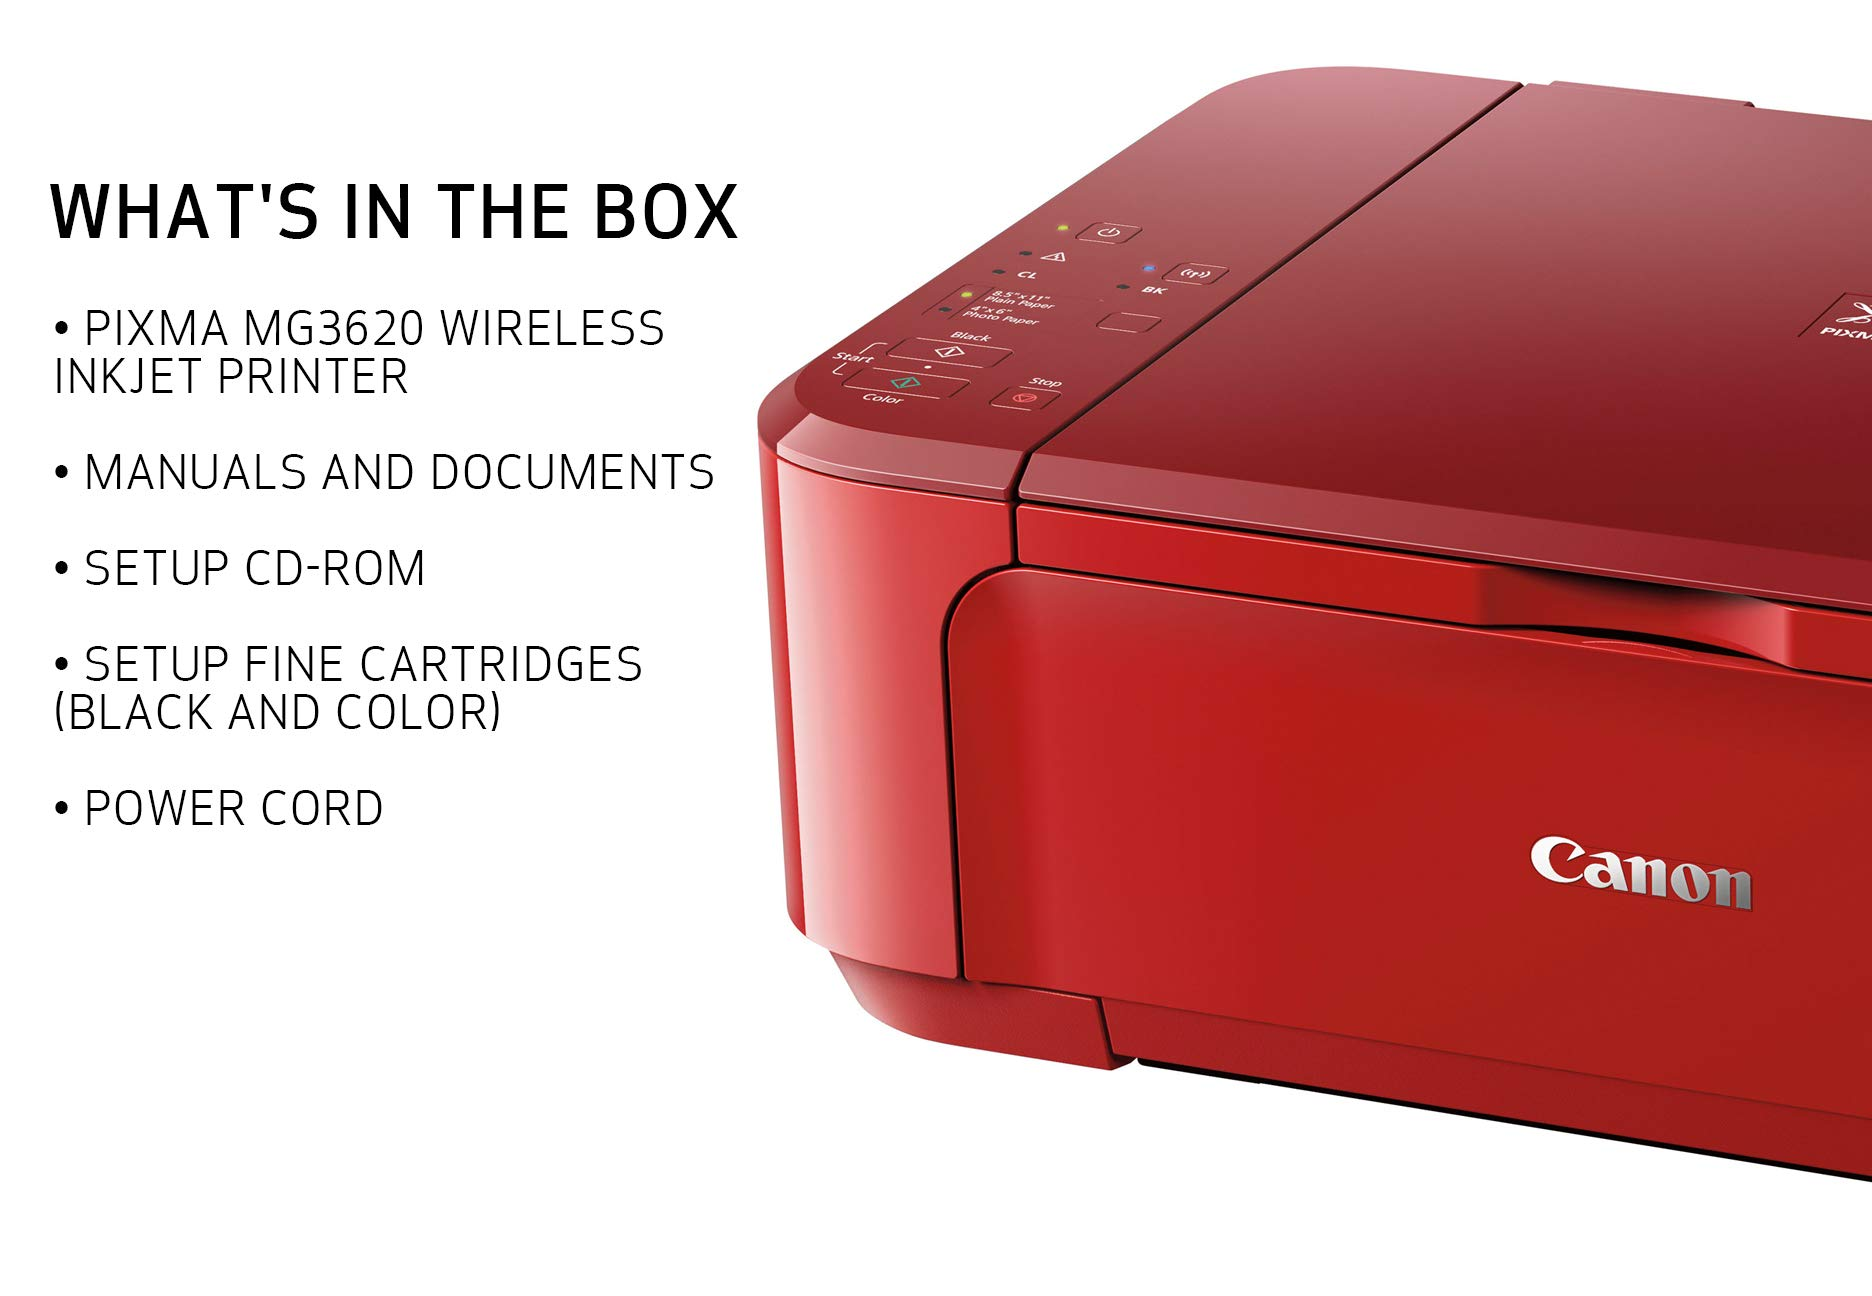 Canon PIXMA MG3620 Wireless All-In-One Color Inkjet Printer with Mobile and Tablet Printing, Red by Canon (Image #4)